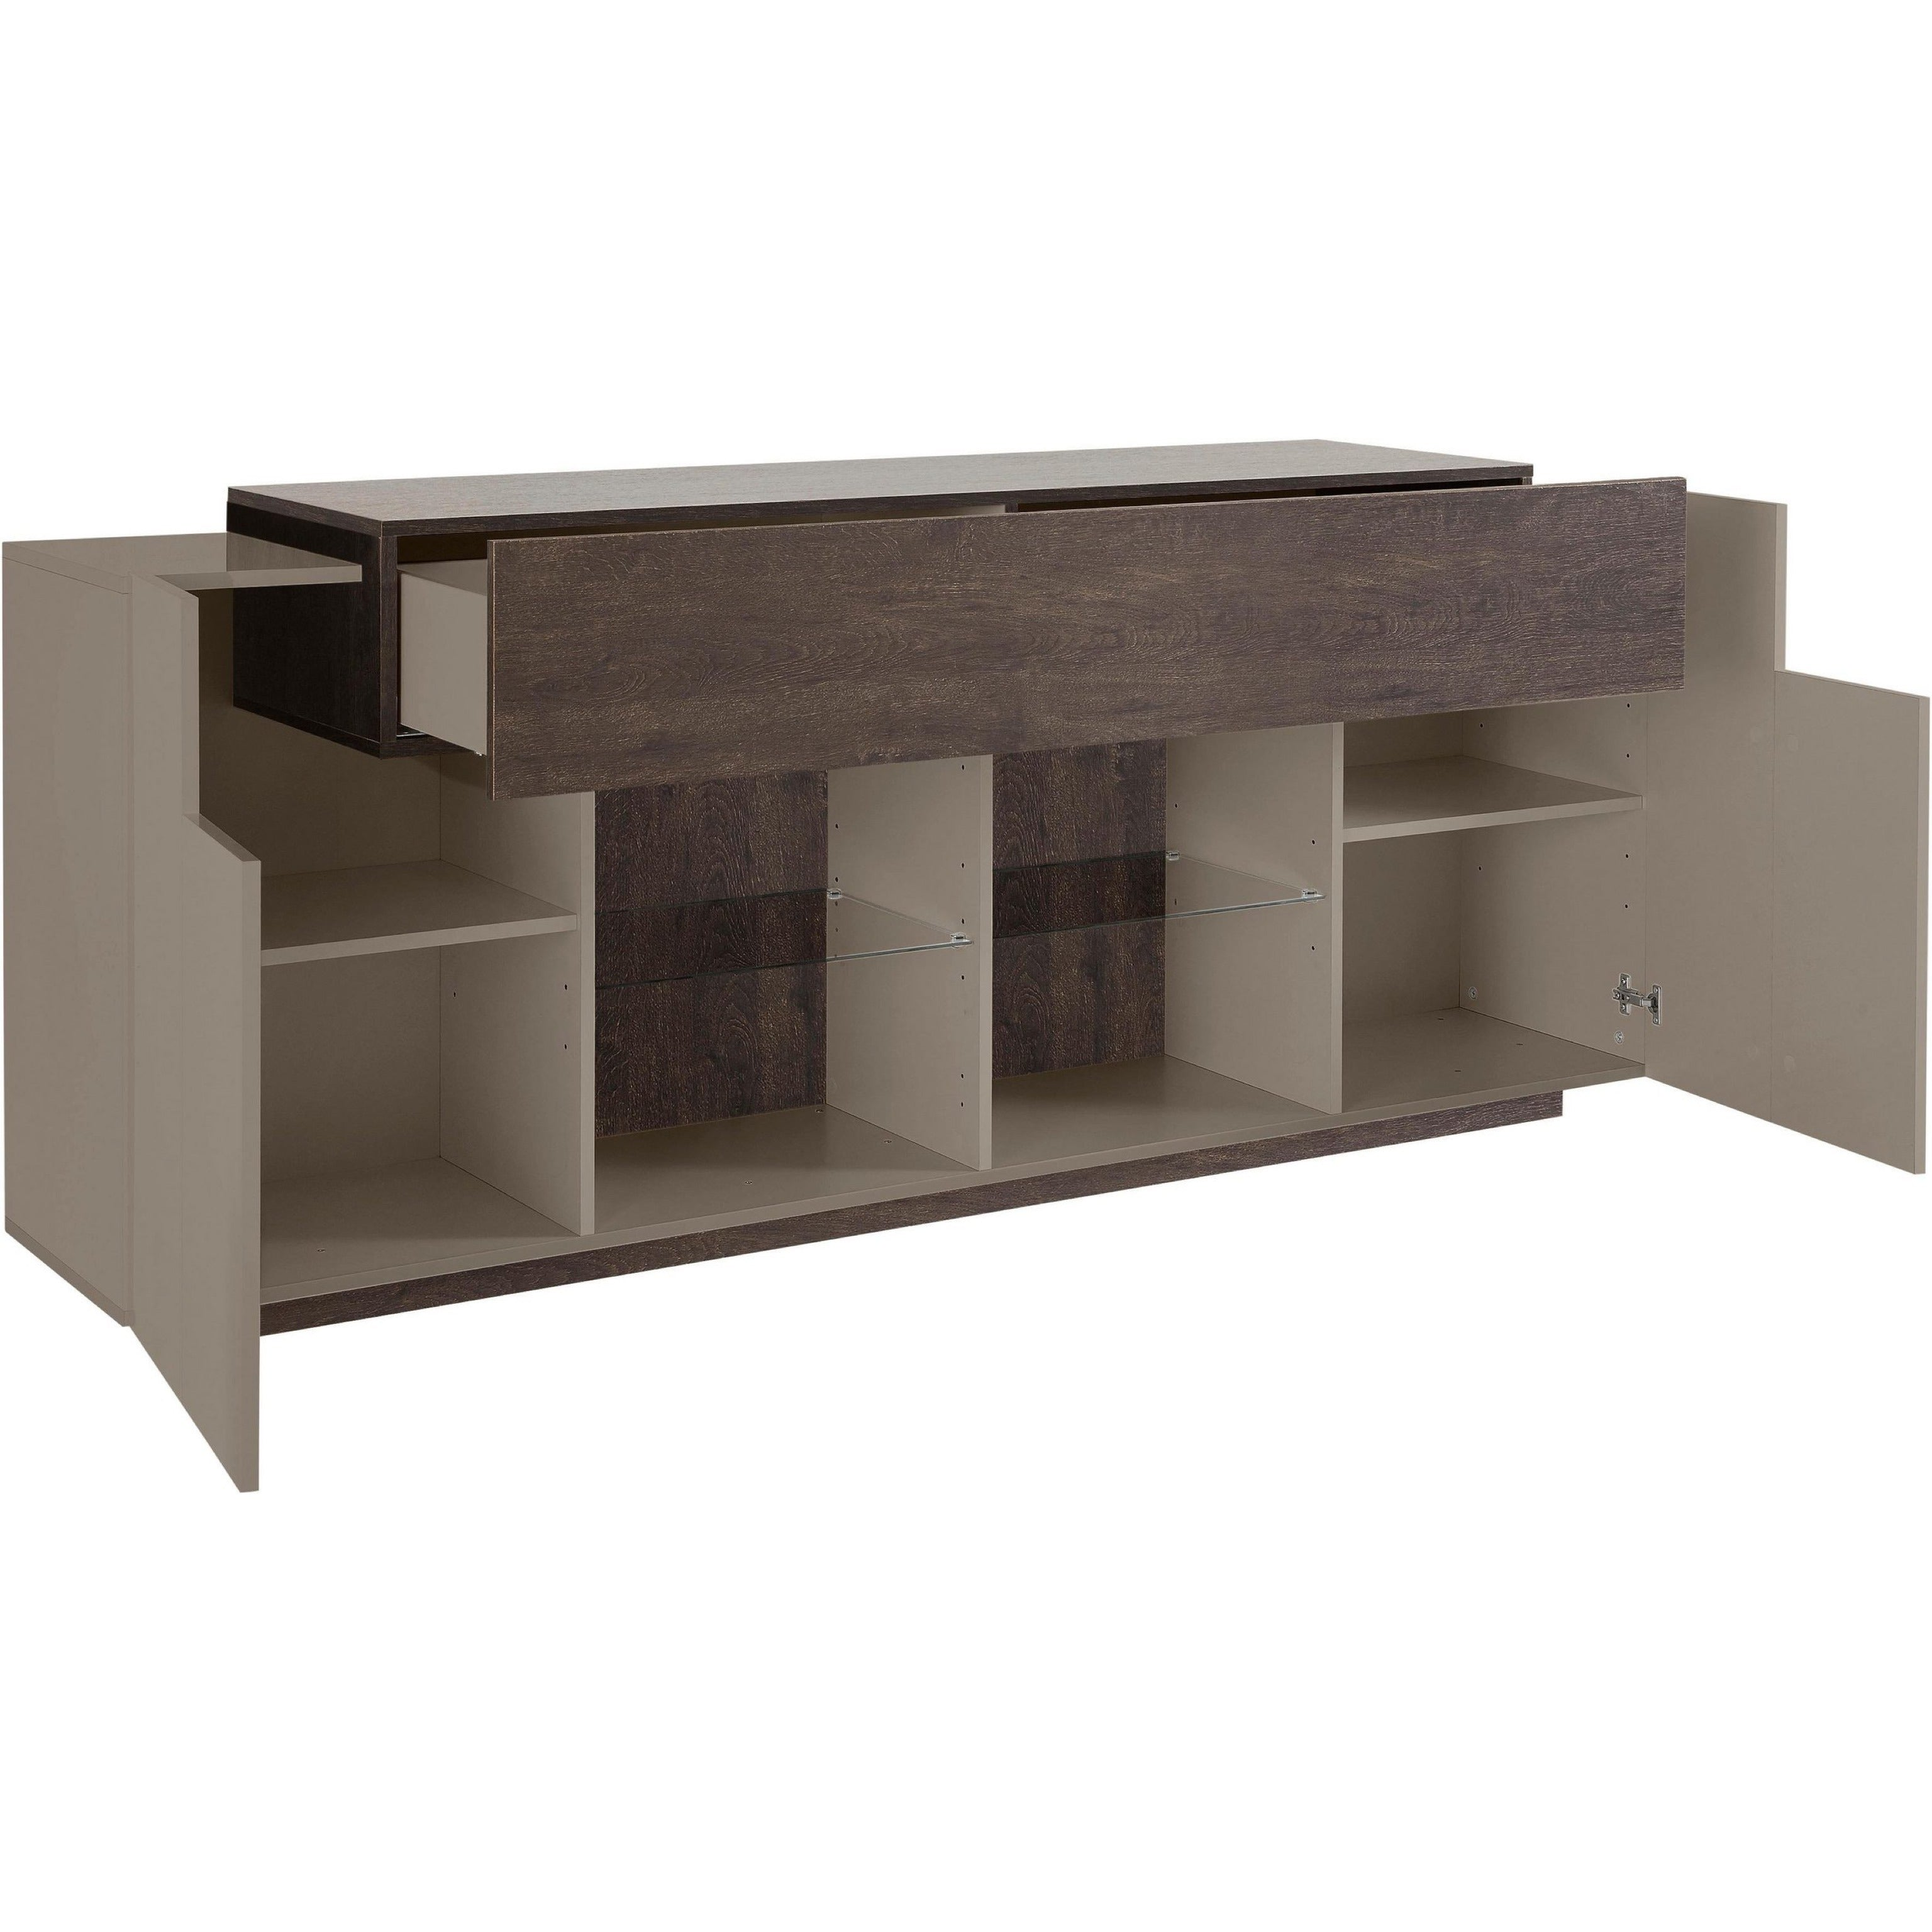 Asia 2 Cabinet High Gloss Sideboard